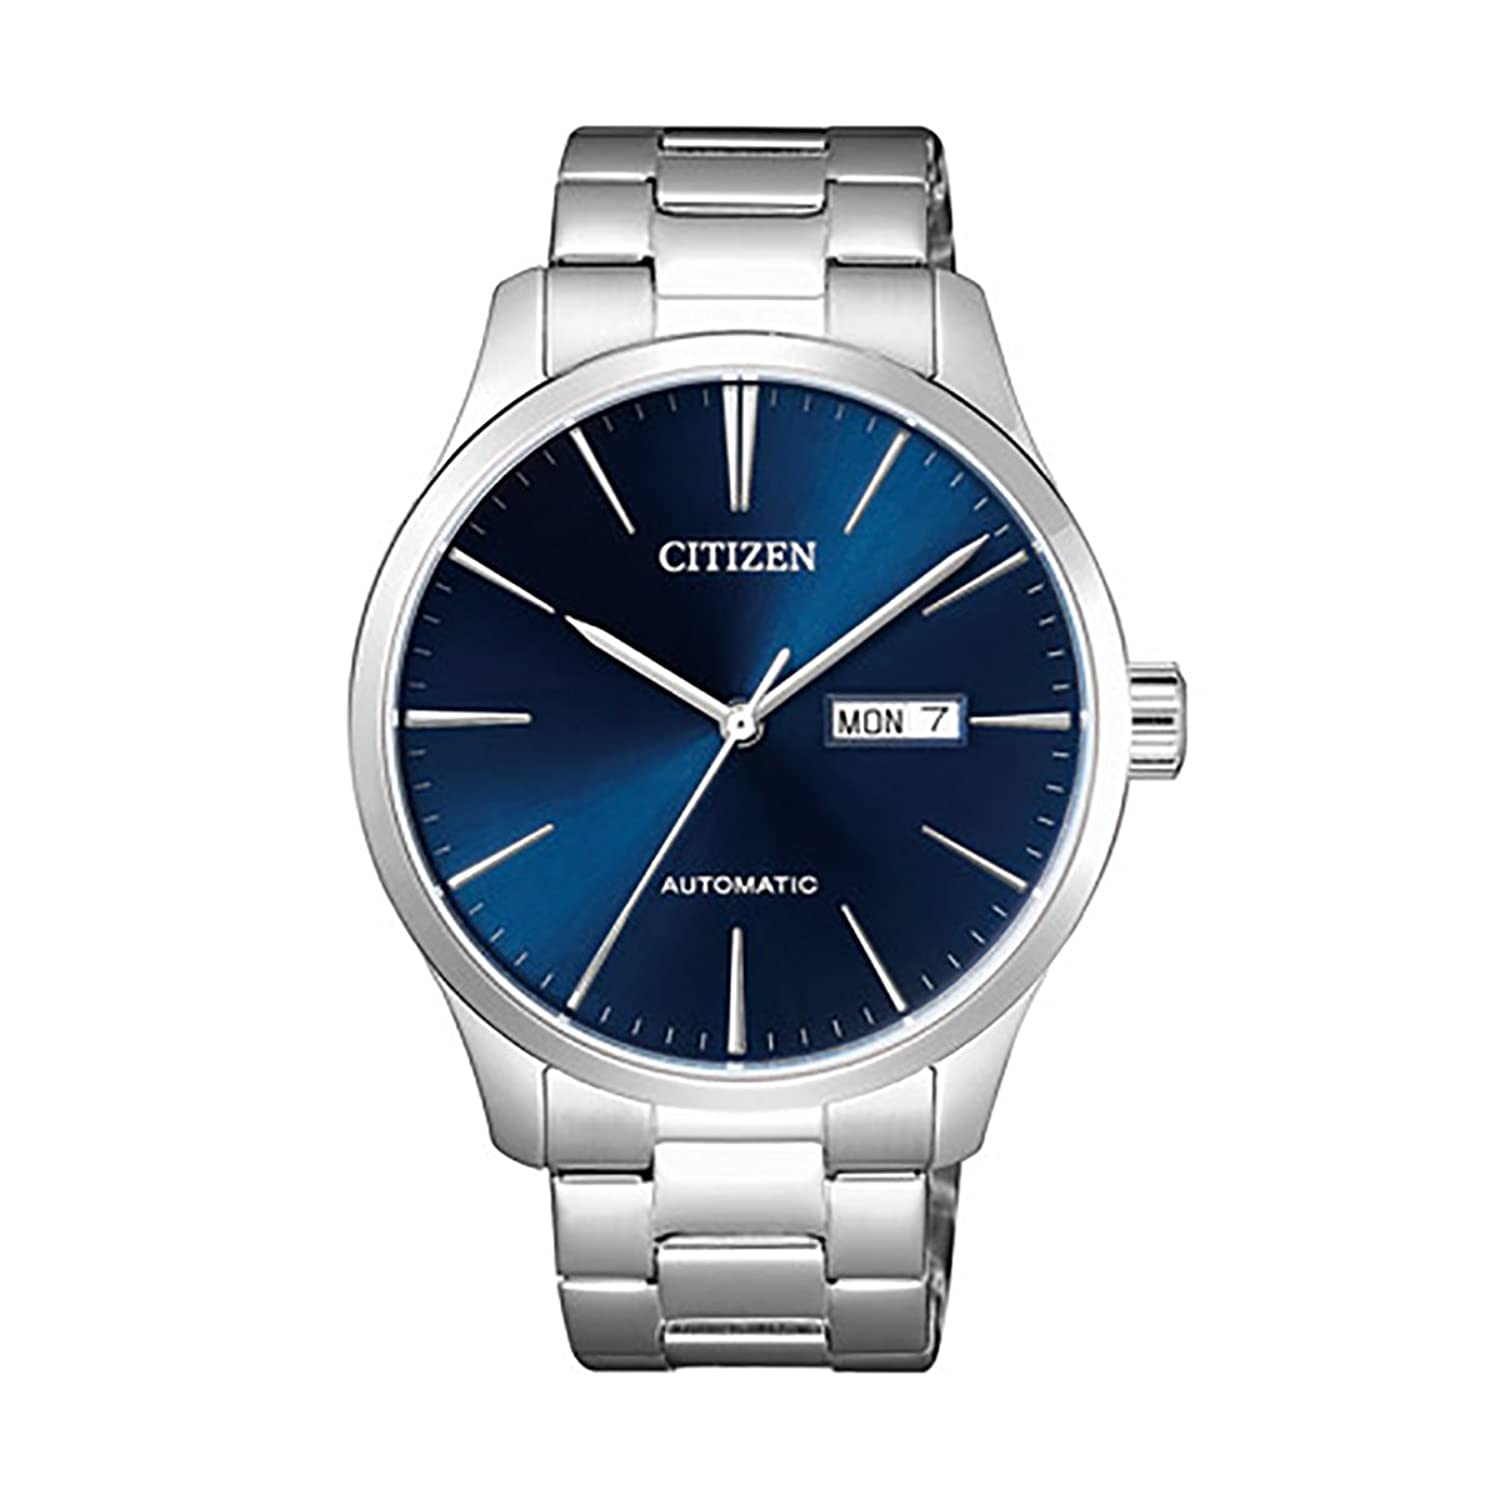 Citizen Classic Automatic Blue Sunray Dial Steel Watch Nh8350 83 L by Citizen